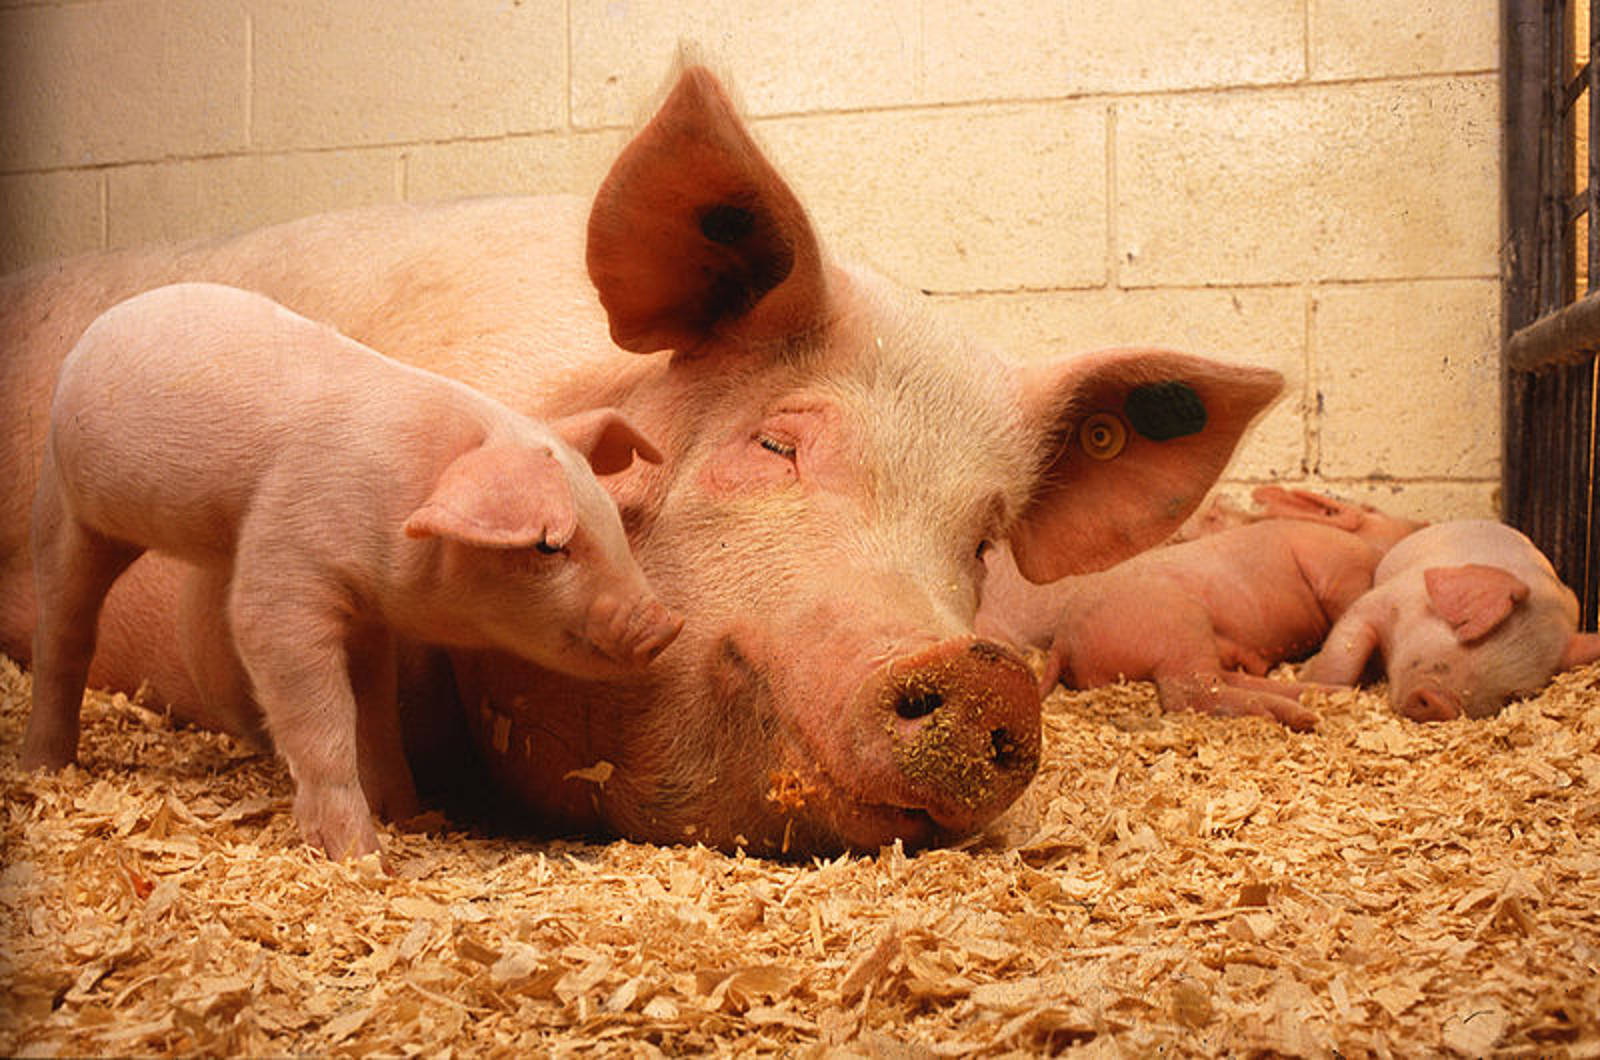 5 Animals Slaughtered for 'Traditional' Food